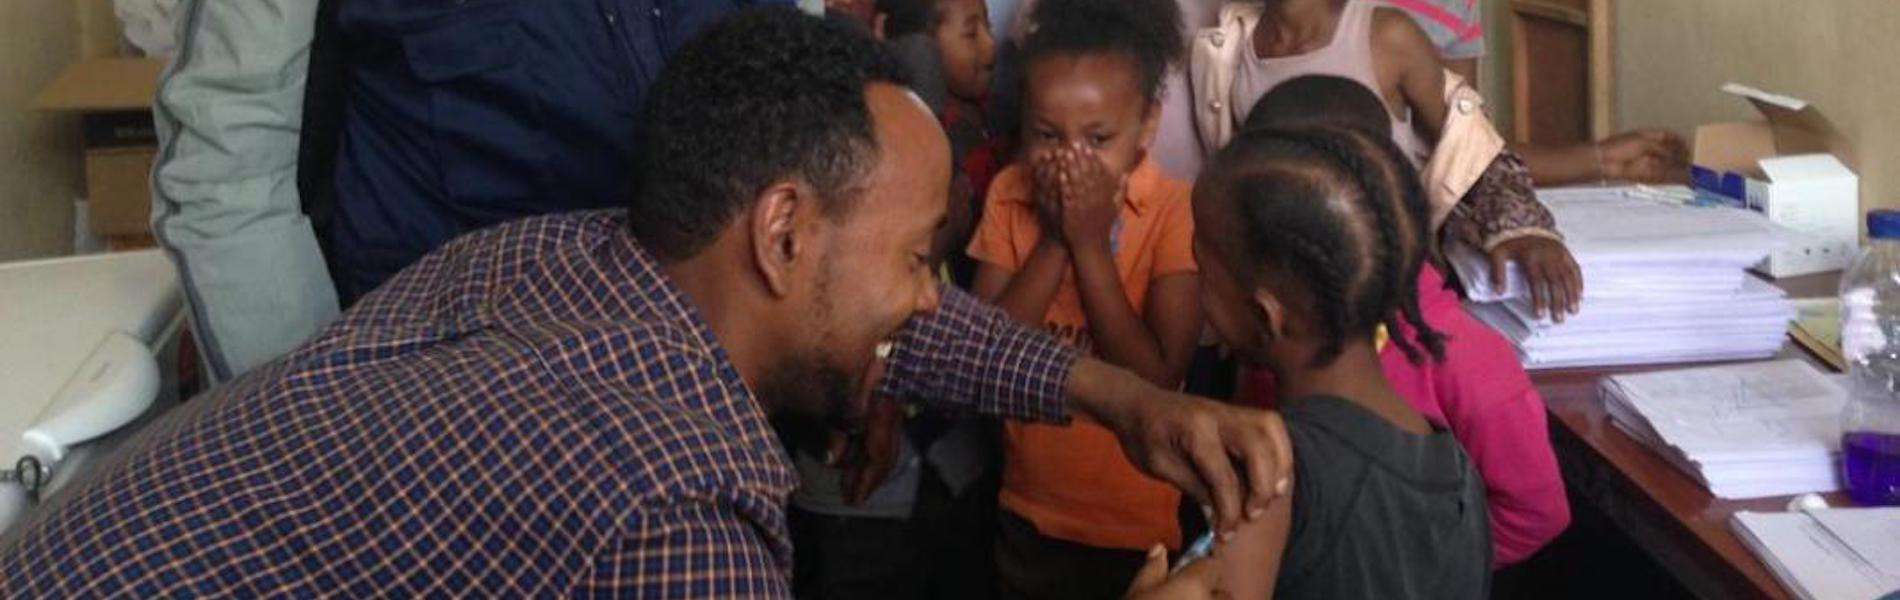 Ethiopia to vaccinate more than 1 million people against yellow fever